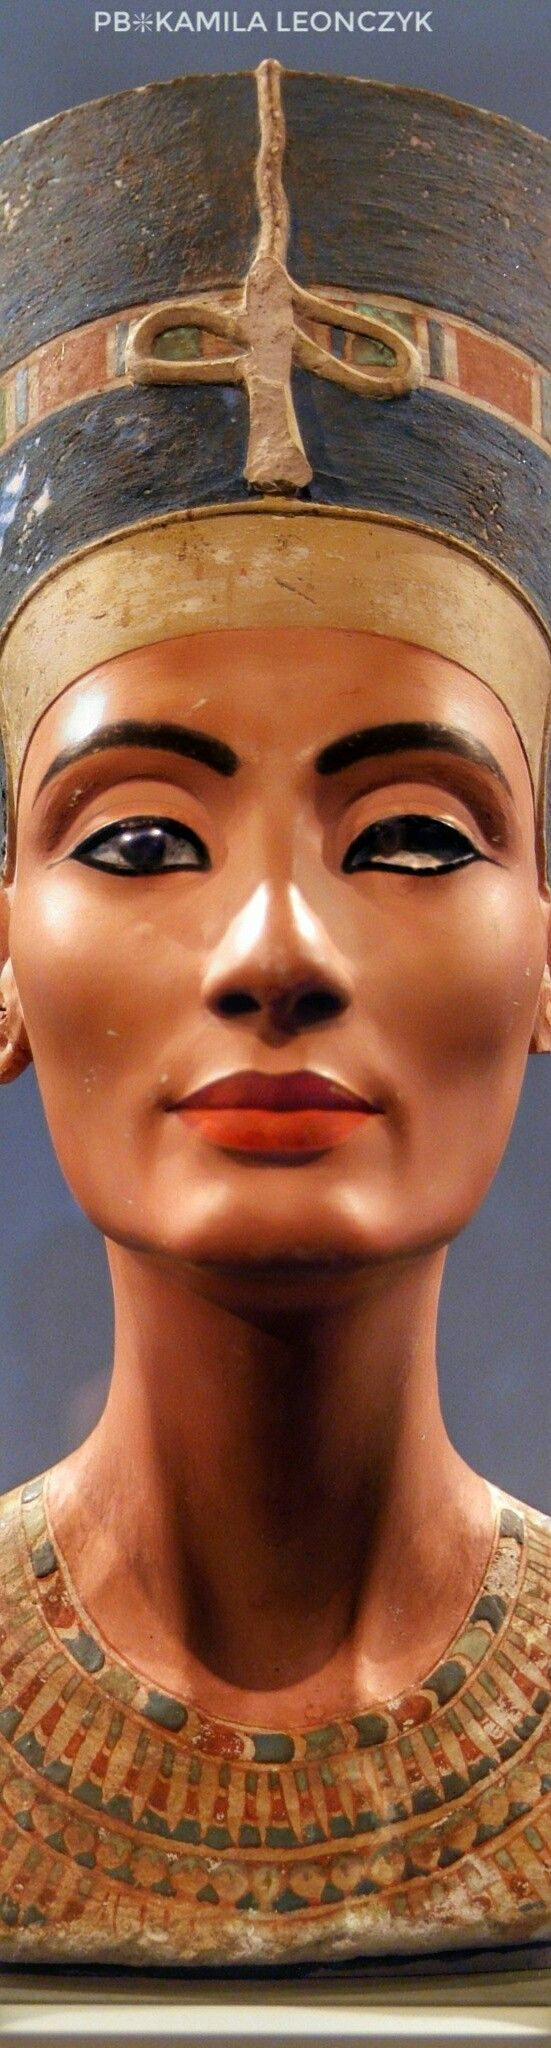 The iconic bust of Nefertiti is part of the Egyptian Museum of Berlin collection, currently on display in the Neues Museum - The Nefertiti Bust is a painted stucco-coated limestone bust of Nefertiti, the Great Royal Wife of the Egyptian Pharaoh Akhenaten.The work is believed to have been crafted in 1345 B.C. by the sculptor Thutmose, because it was found in his workshop in Amarna, Egypt